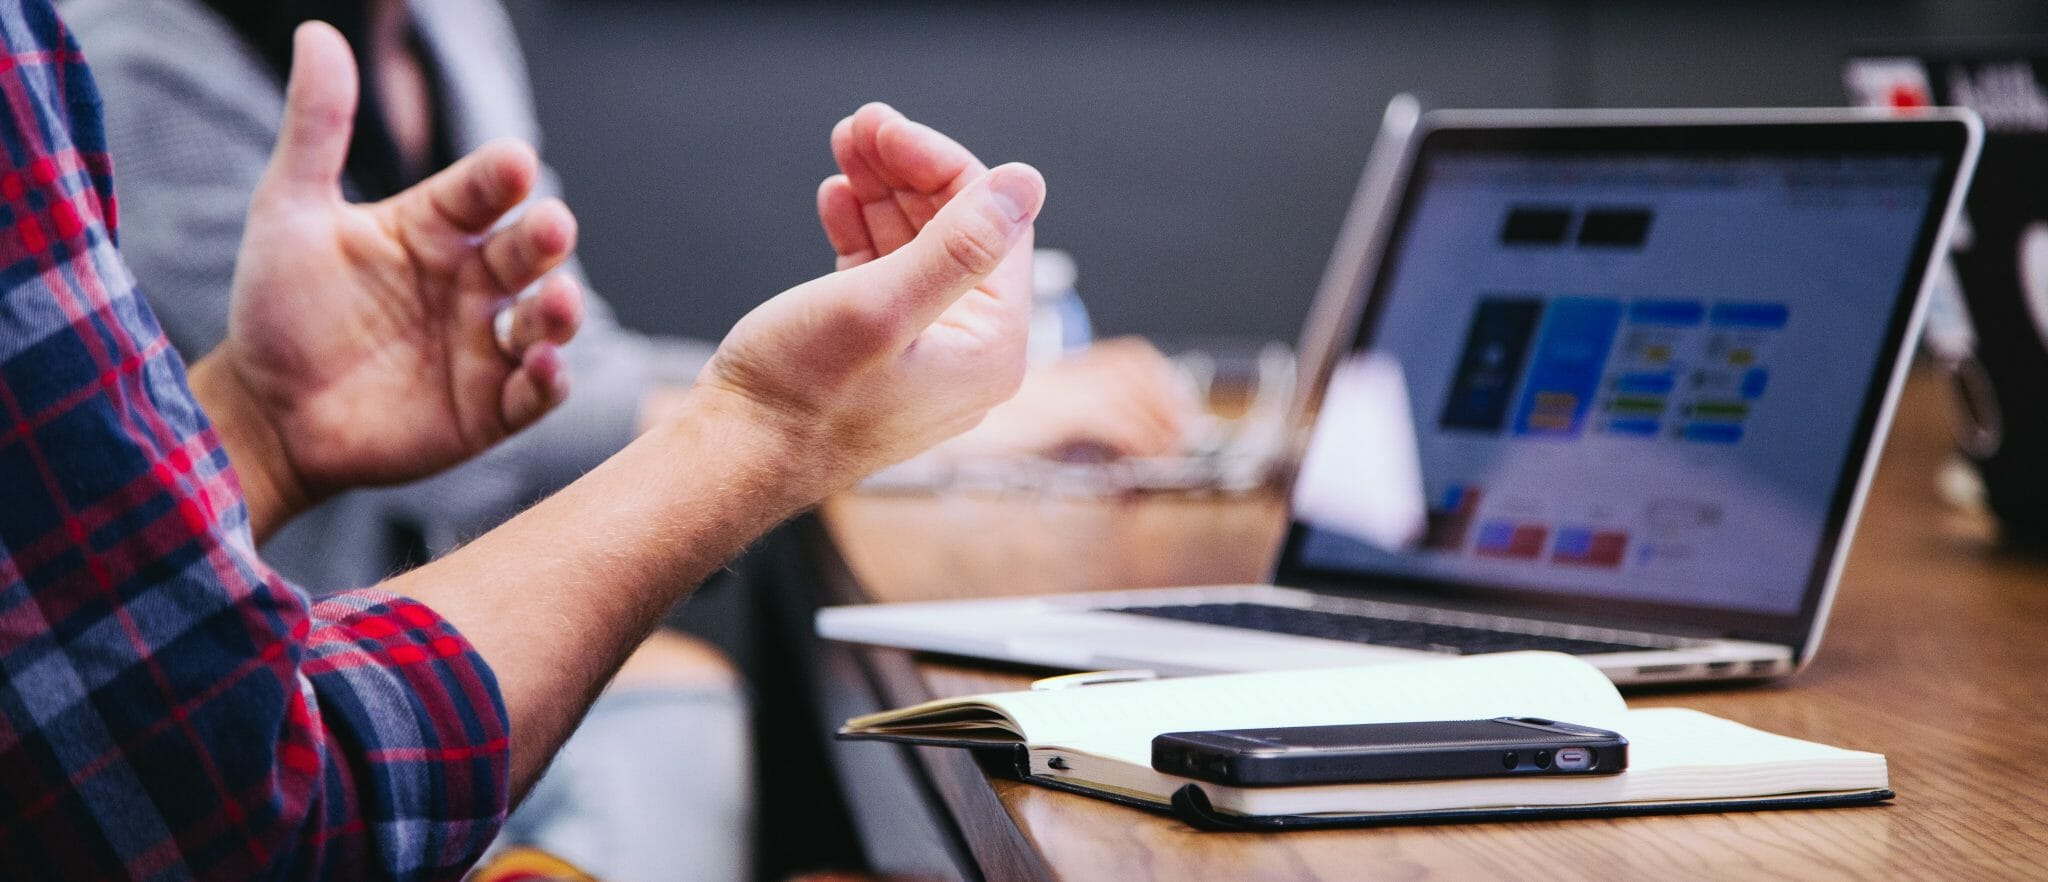 from a low angle, a meeting desk with a phone, notebook, pen & laptop can be seen. to the left, you can see someone's hands who's movements indicate they are explaining someting in a meeting - probably platforms.